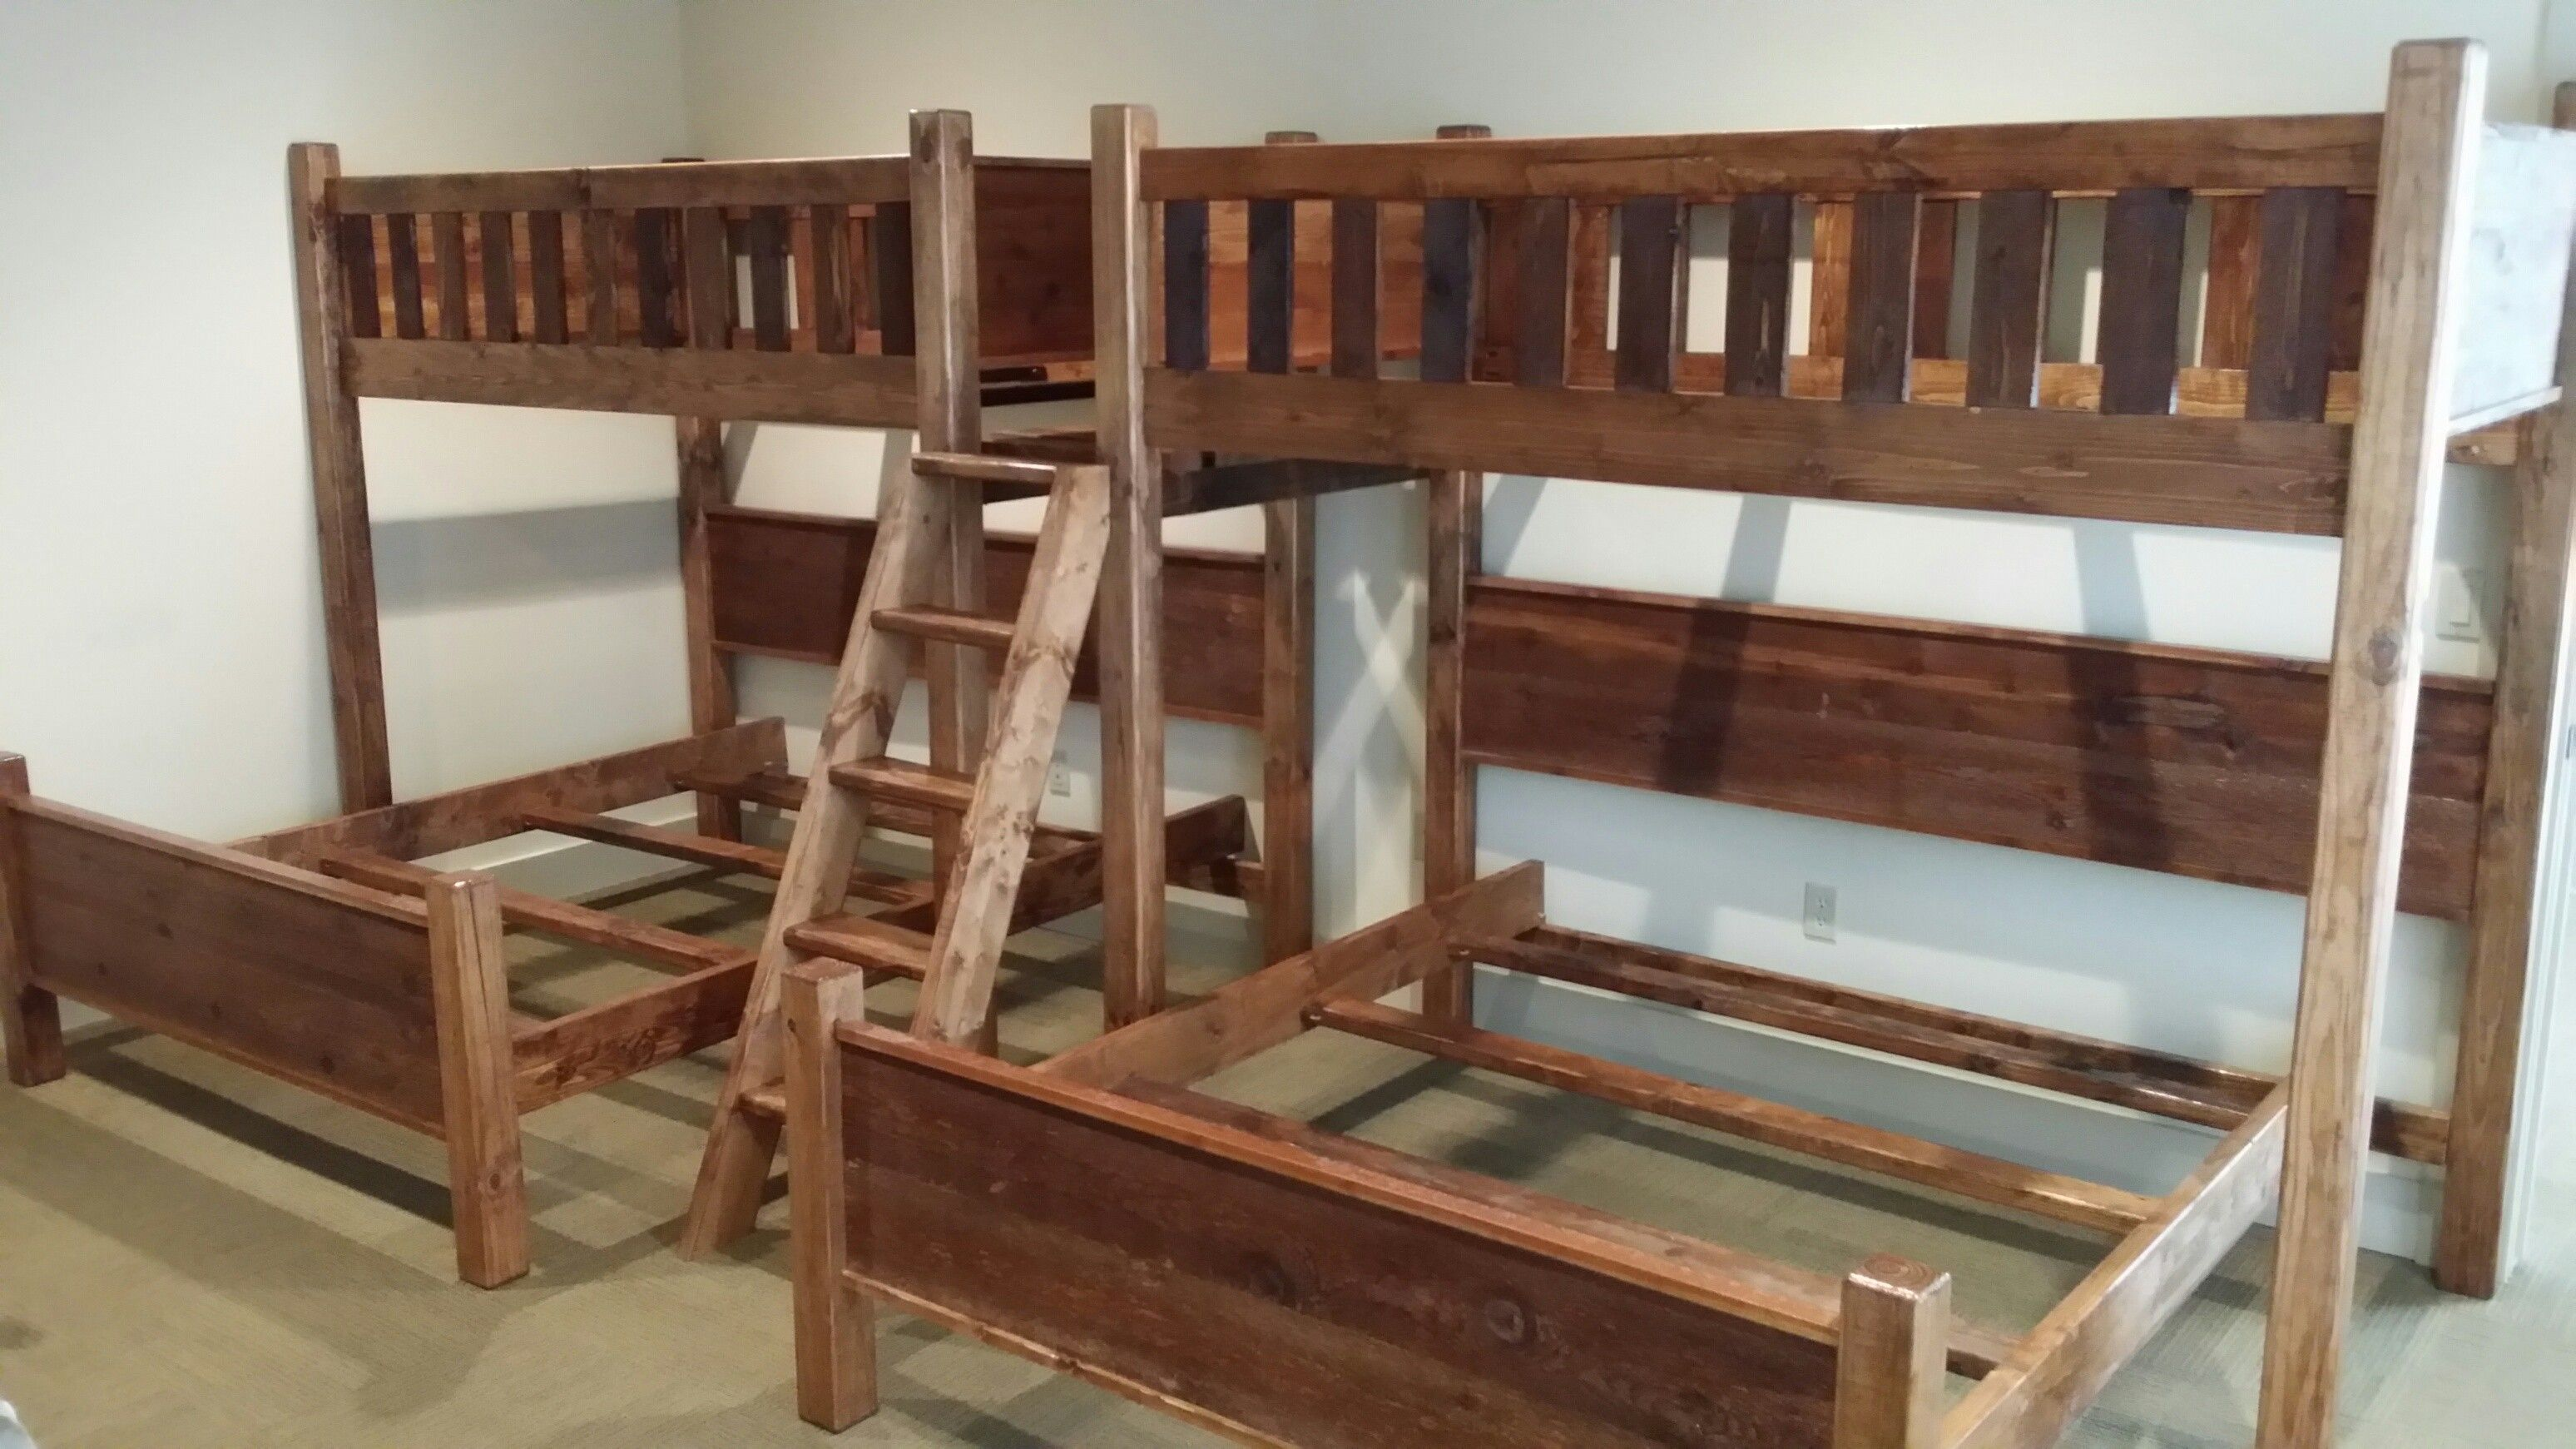 HandMade Bunk Beds and Other Furniture Perpendicular